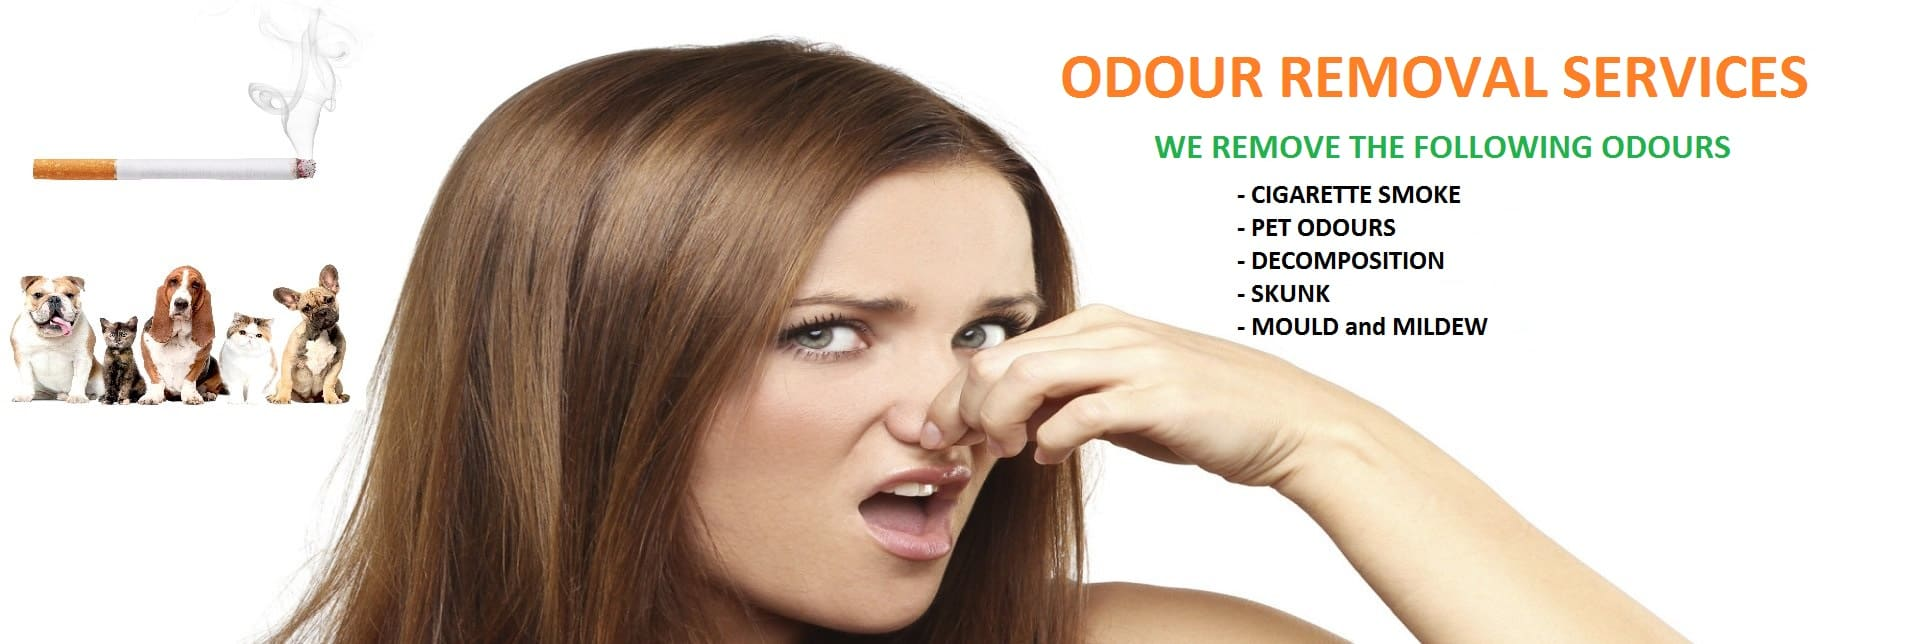 odour removal services ottawa